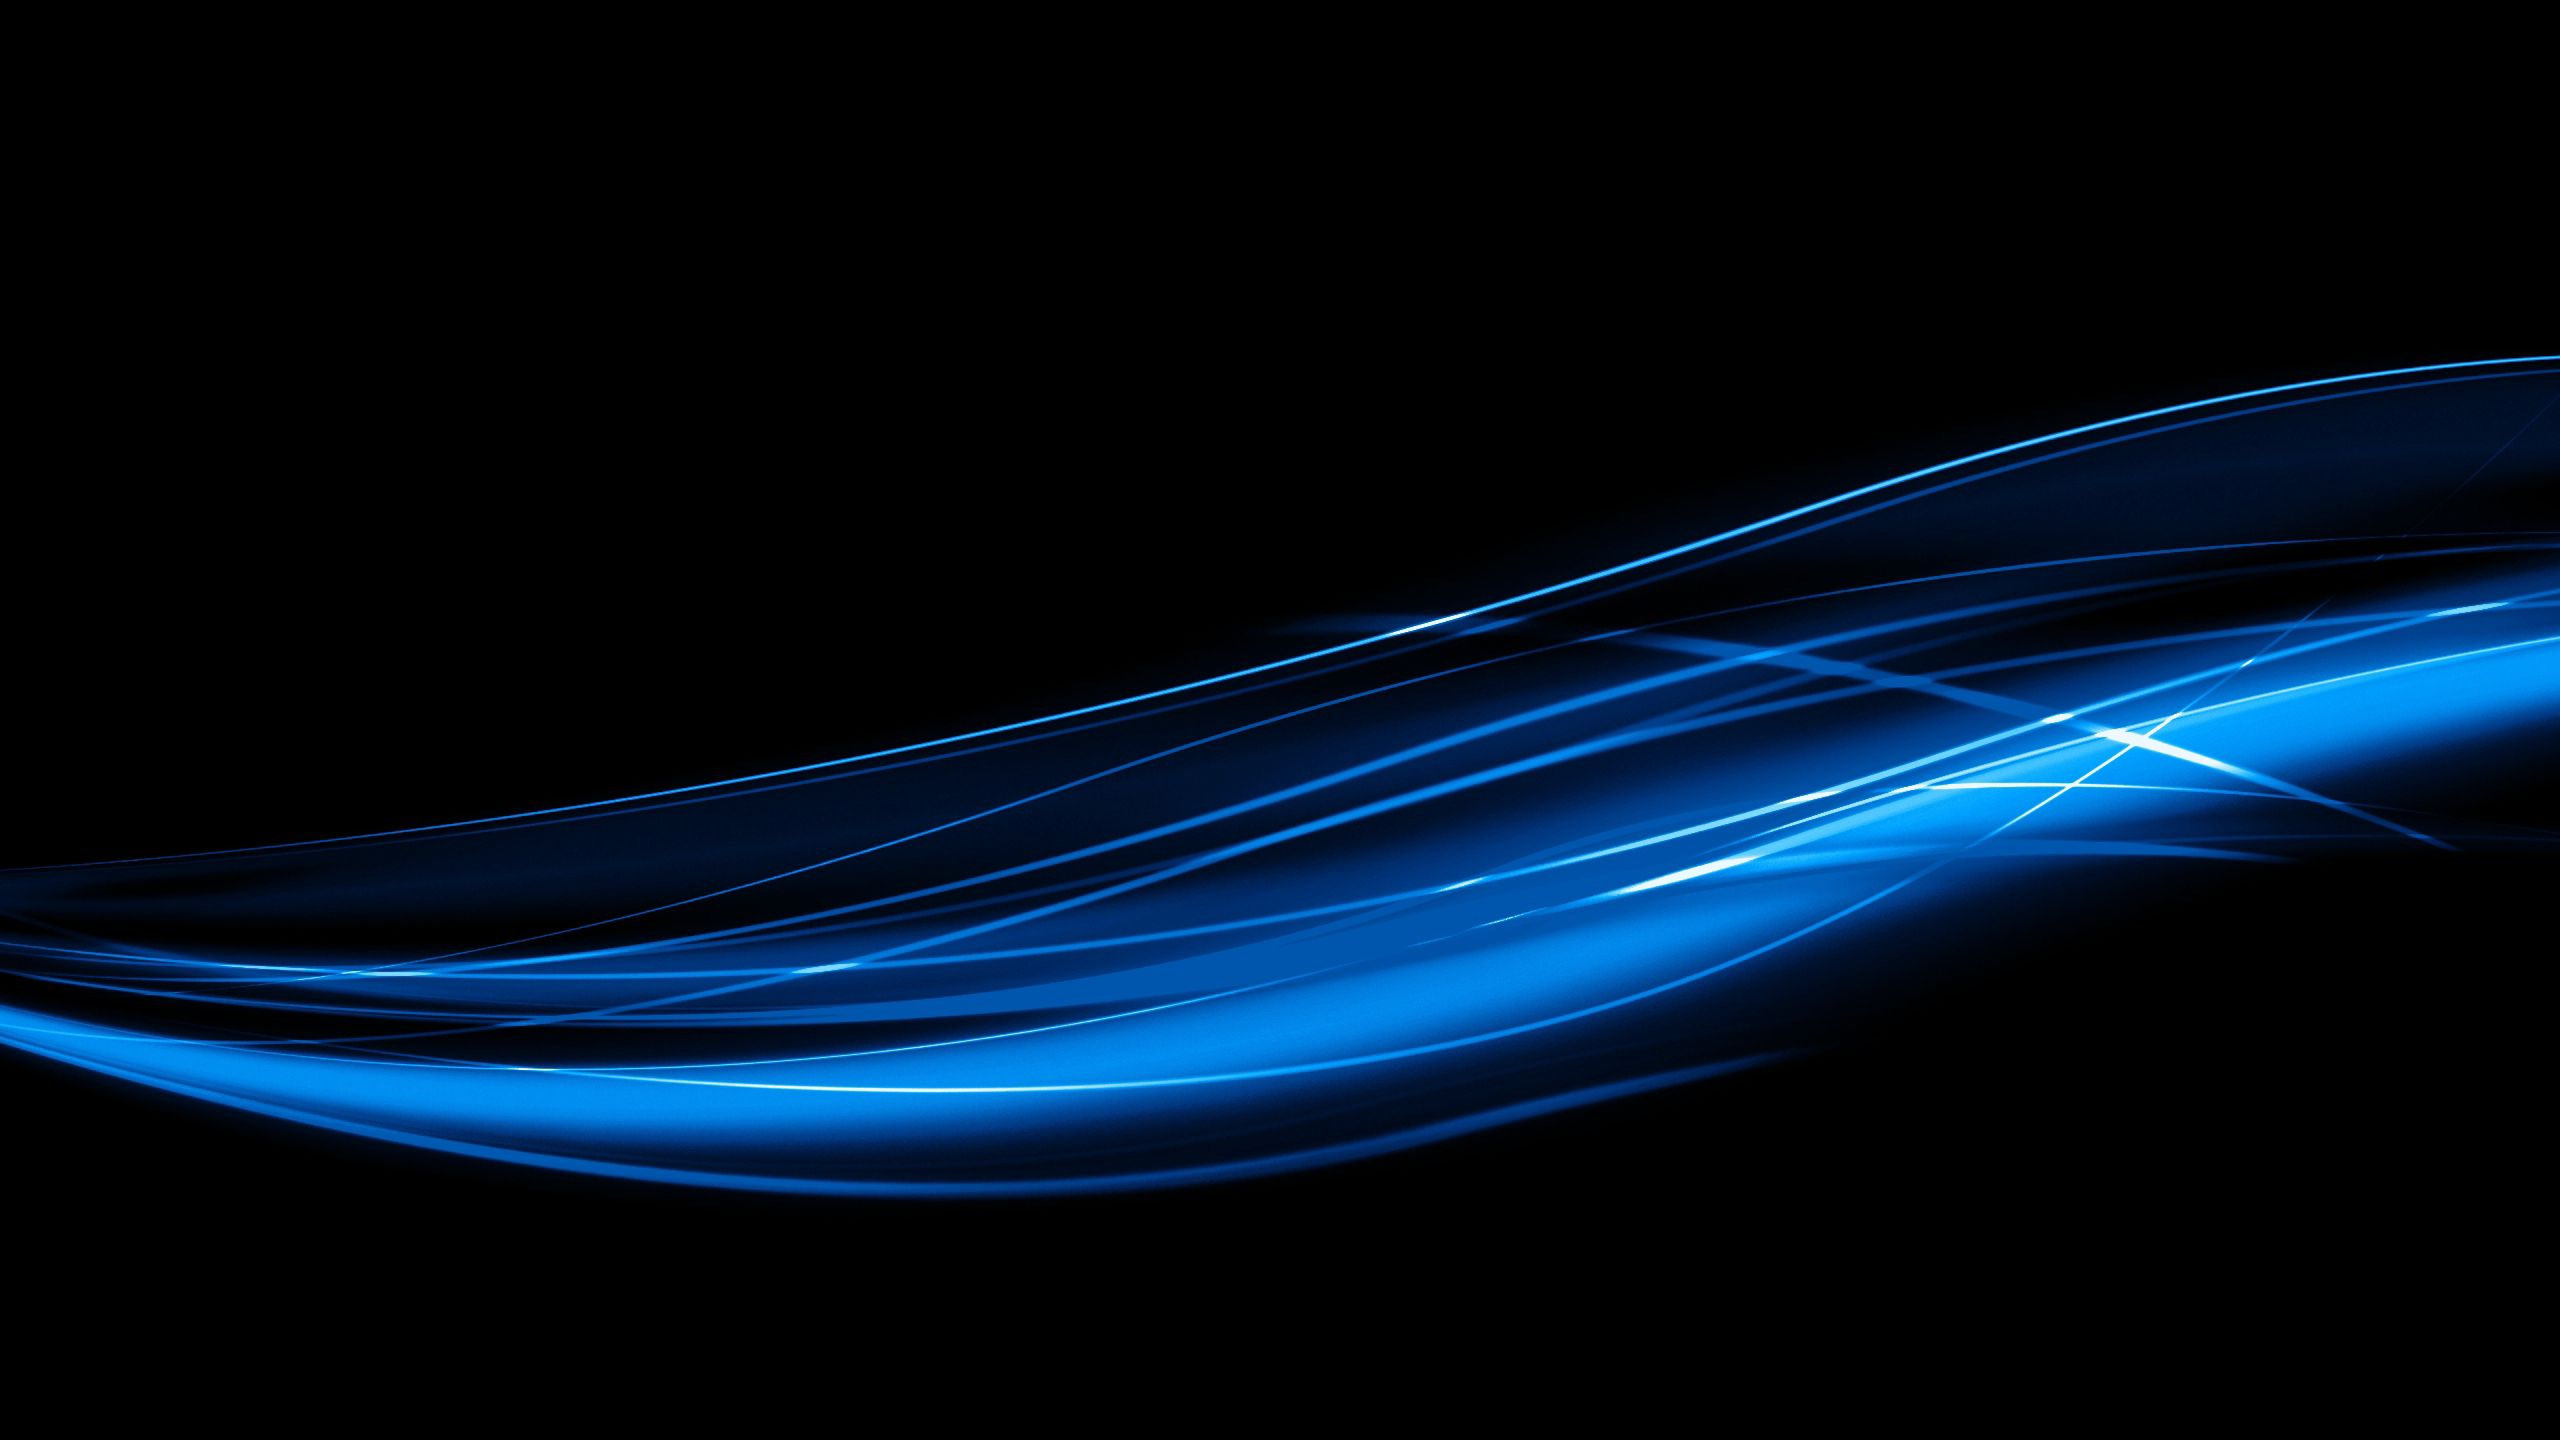 98570 download wallpaper Abstract, Lines, Band, Stripe, Wavy, Neon screensavers and pictures for free